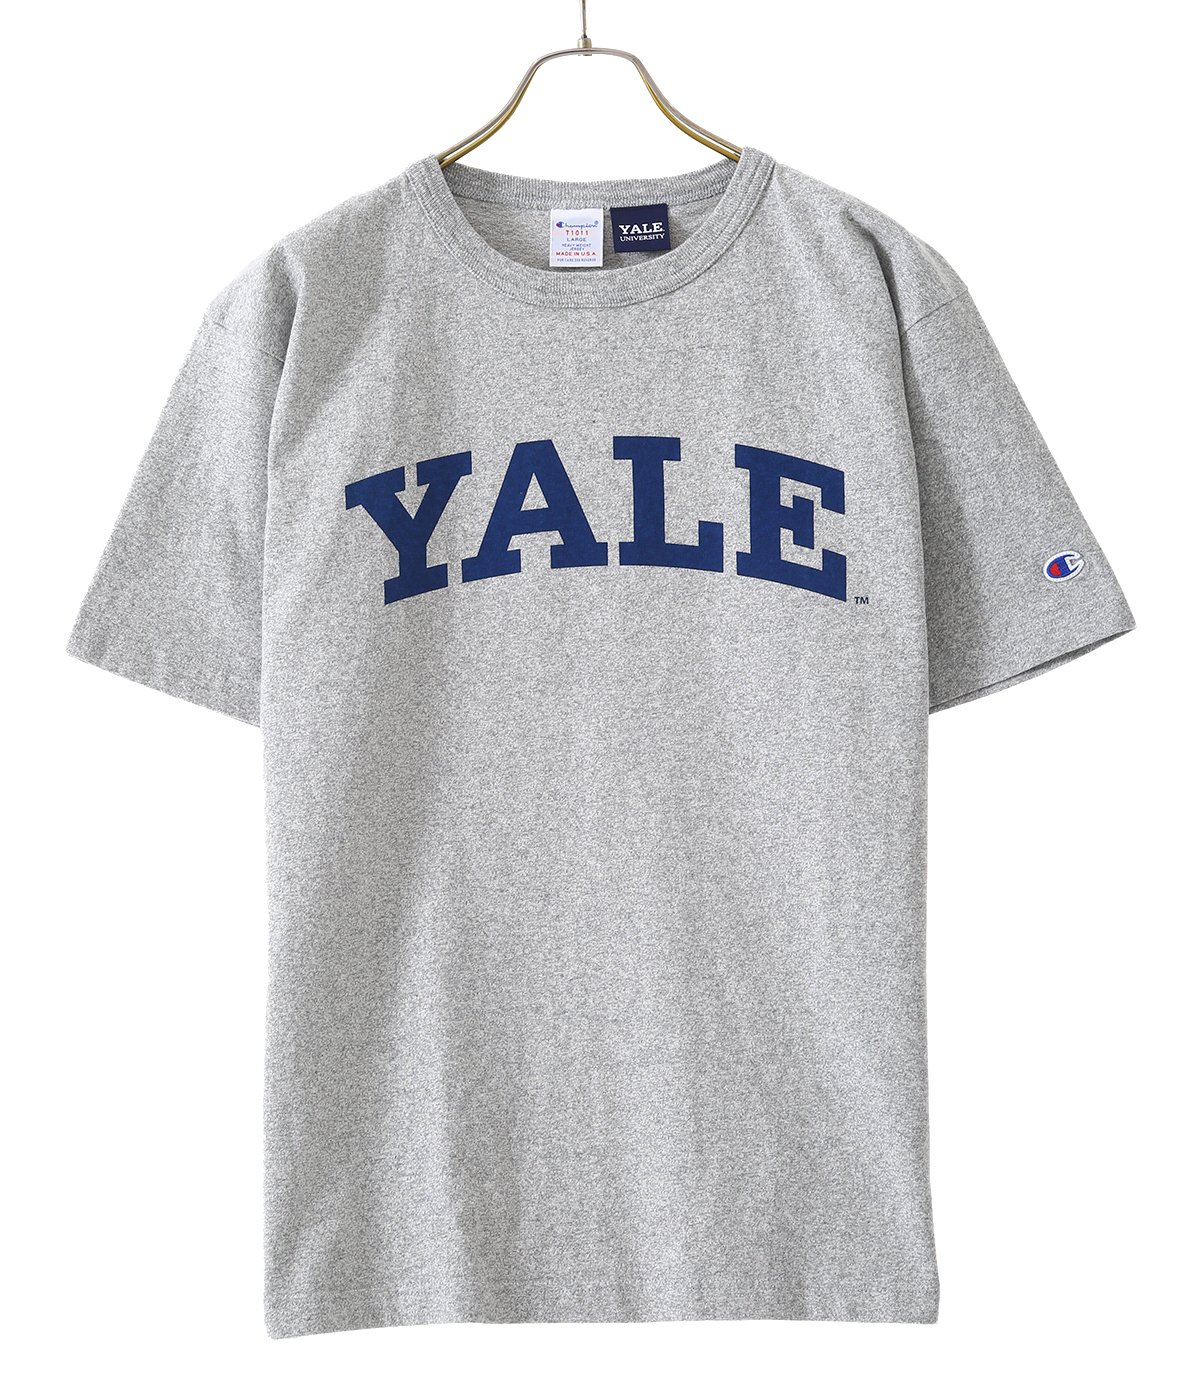 T1011 S/STEE -YALE-